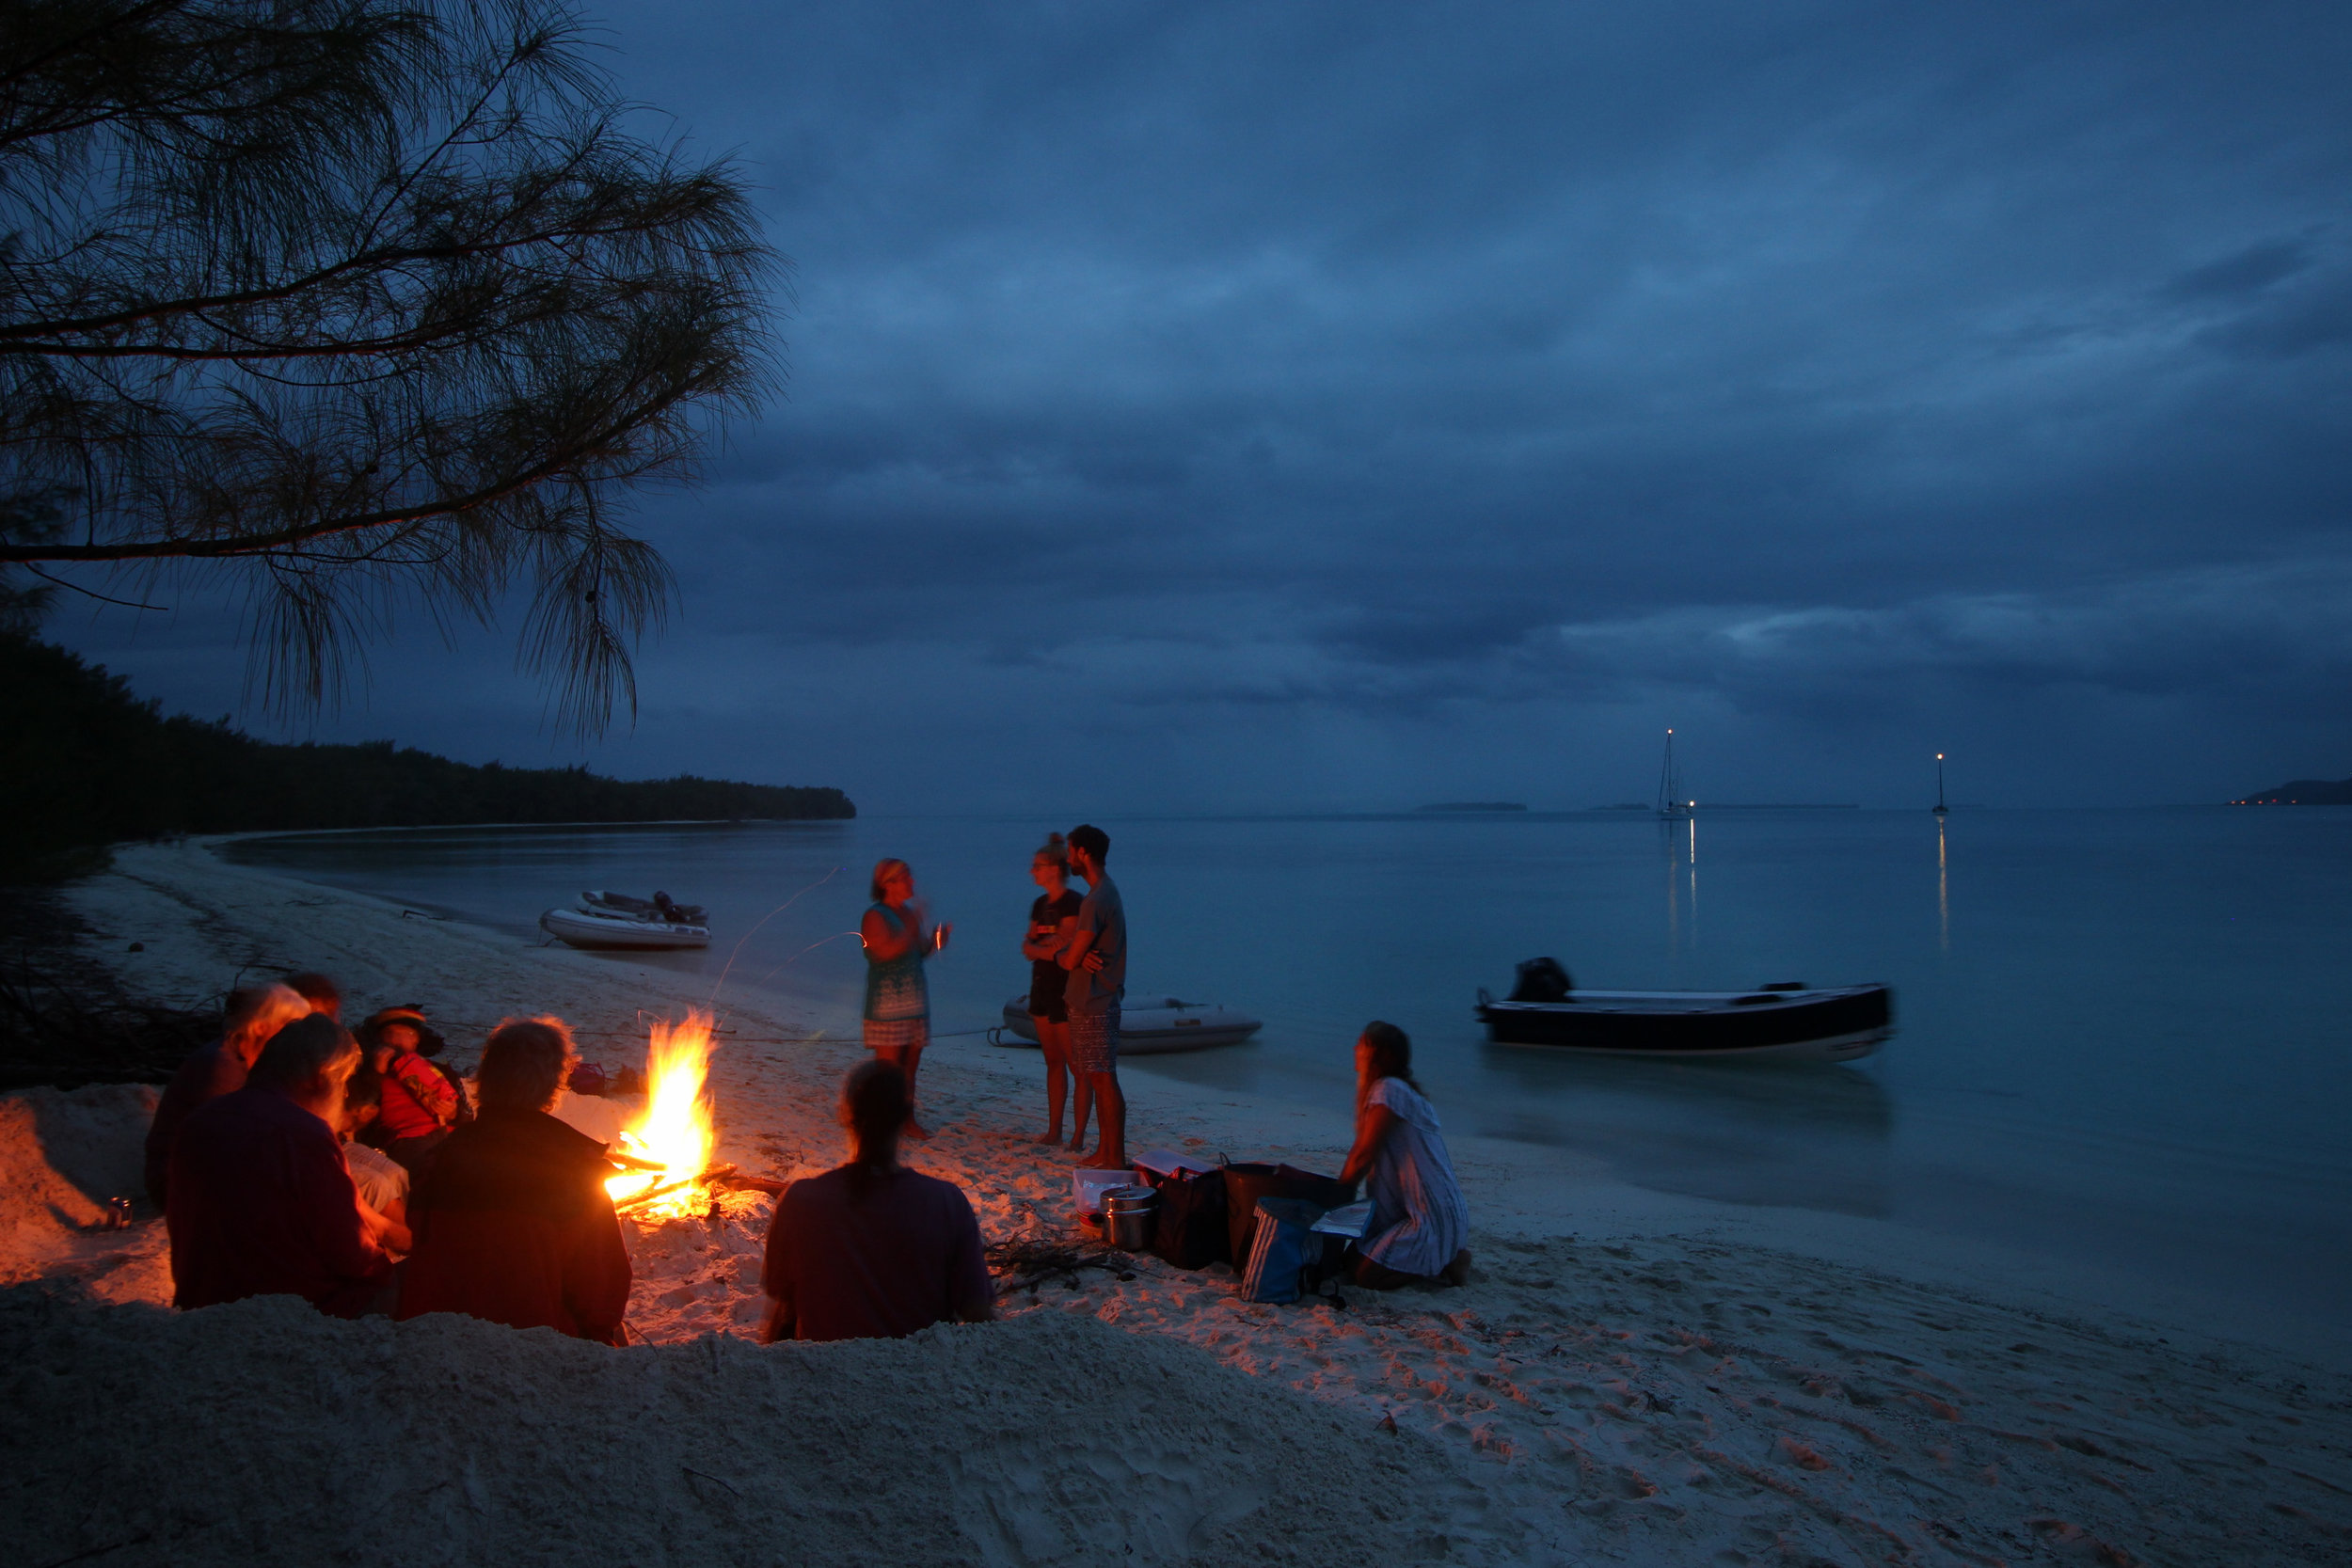 Nights spent around the camp fire on the beach with guitar, sing along and pot luck